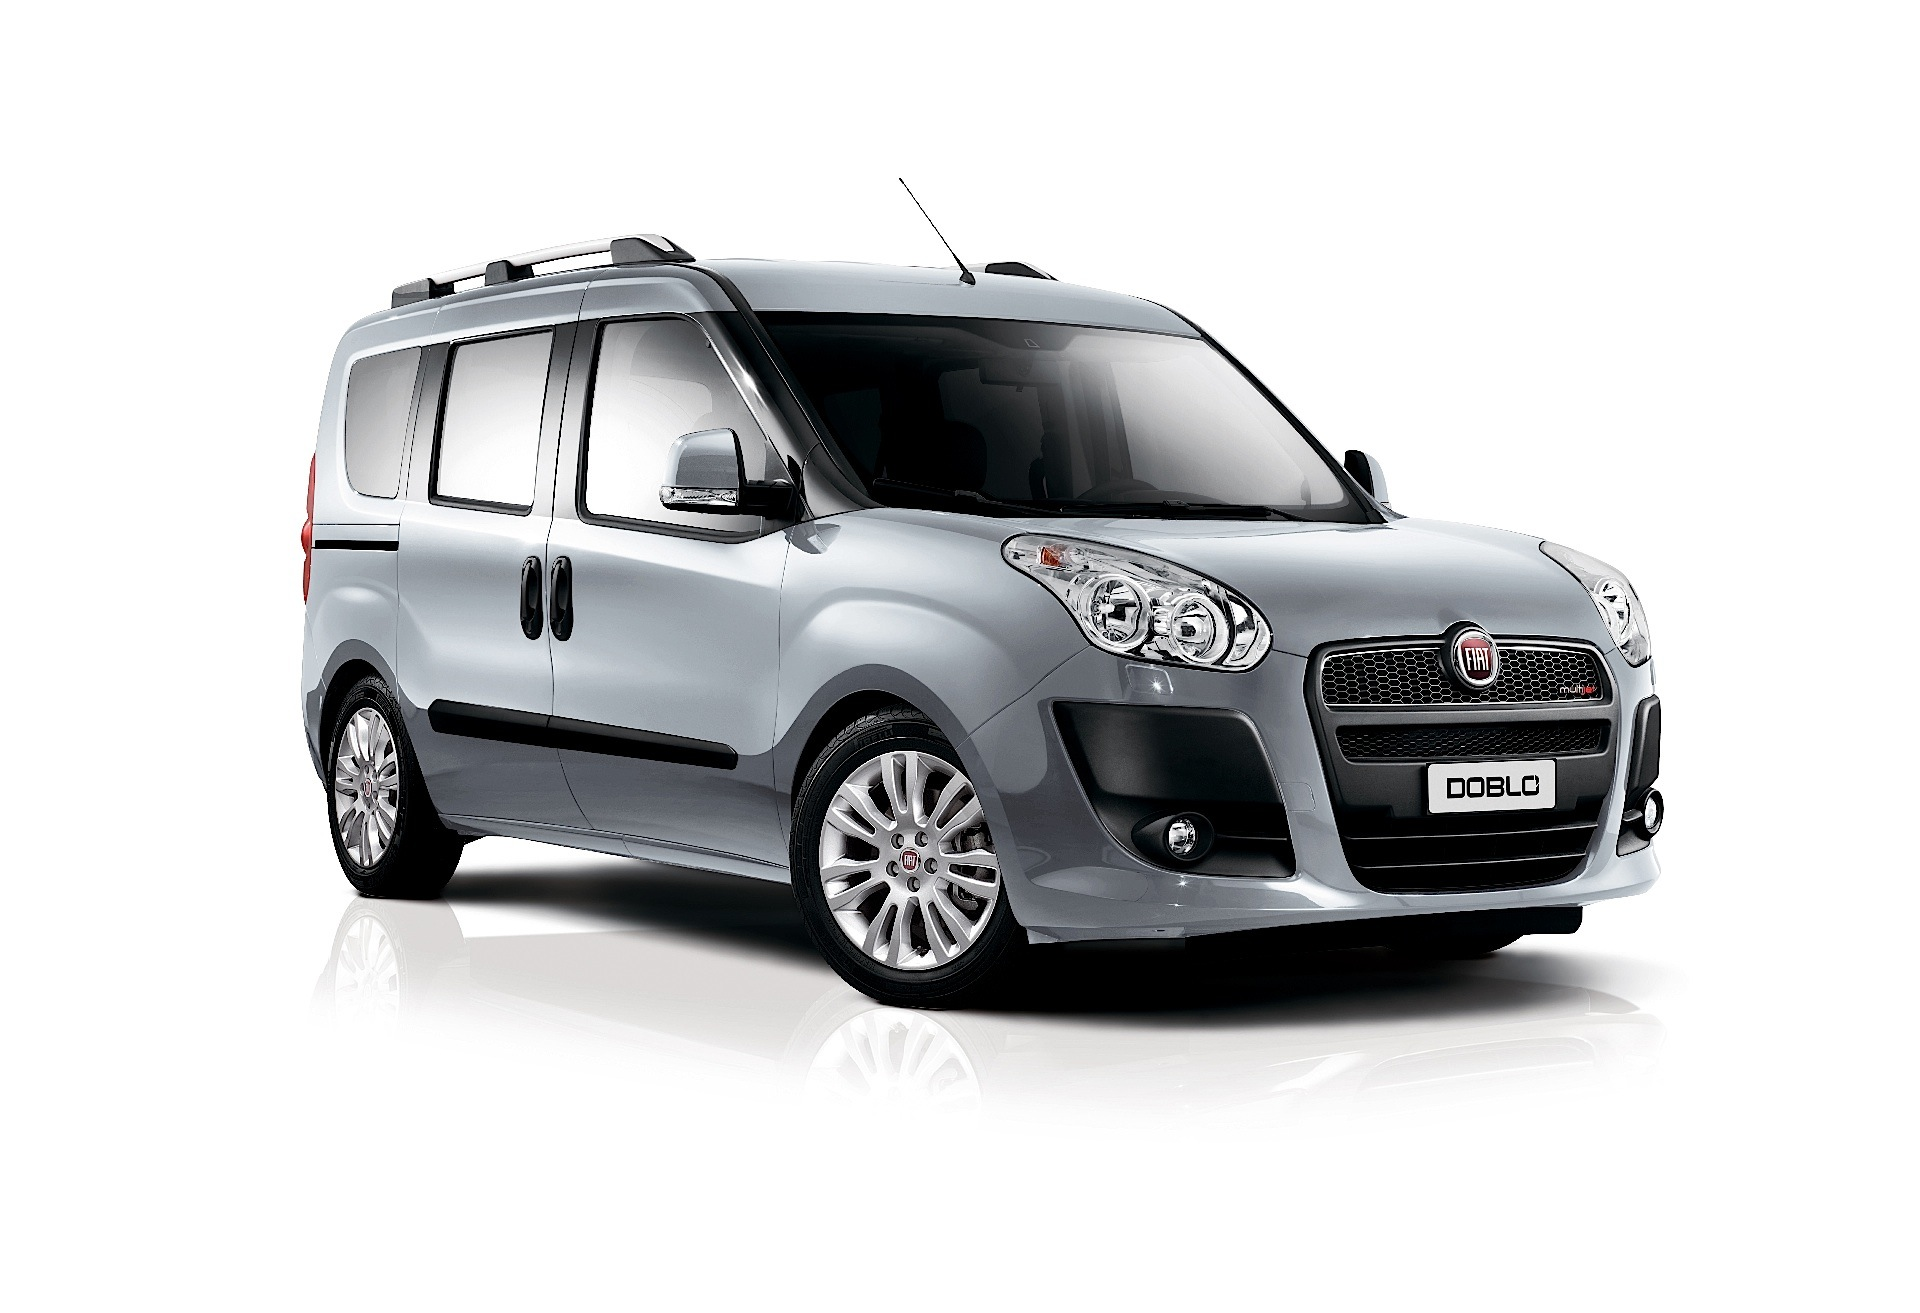 fiat doblo specs photos 2010 2011 2012 2013 2014. Black Bedroom Furniture Sets. Home Design Ideas